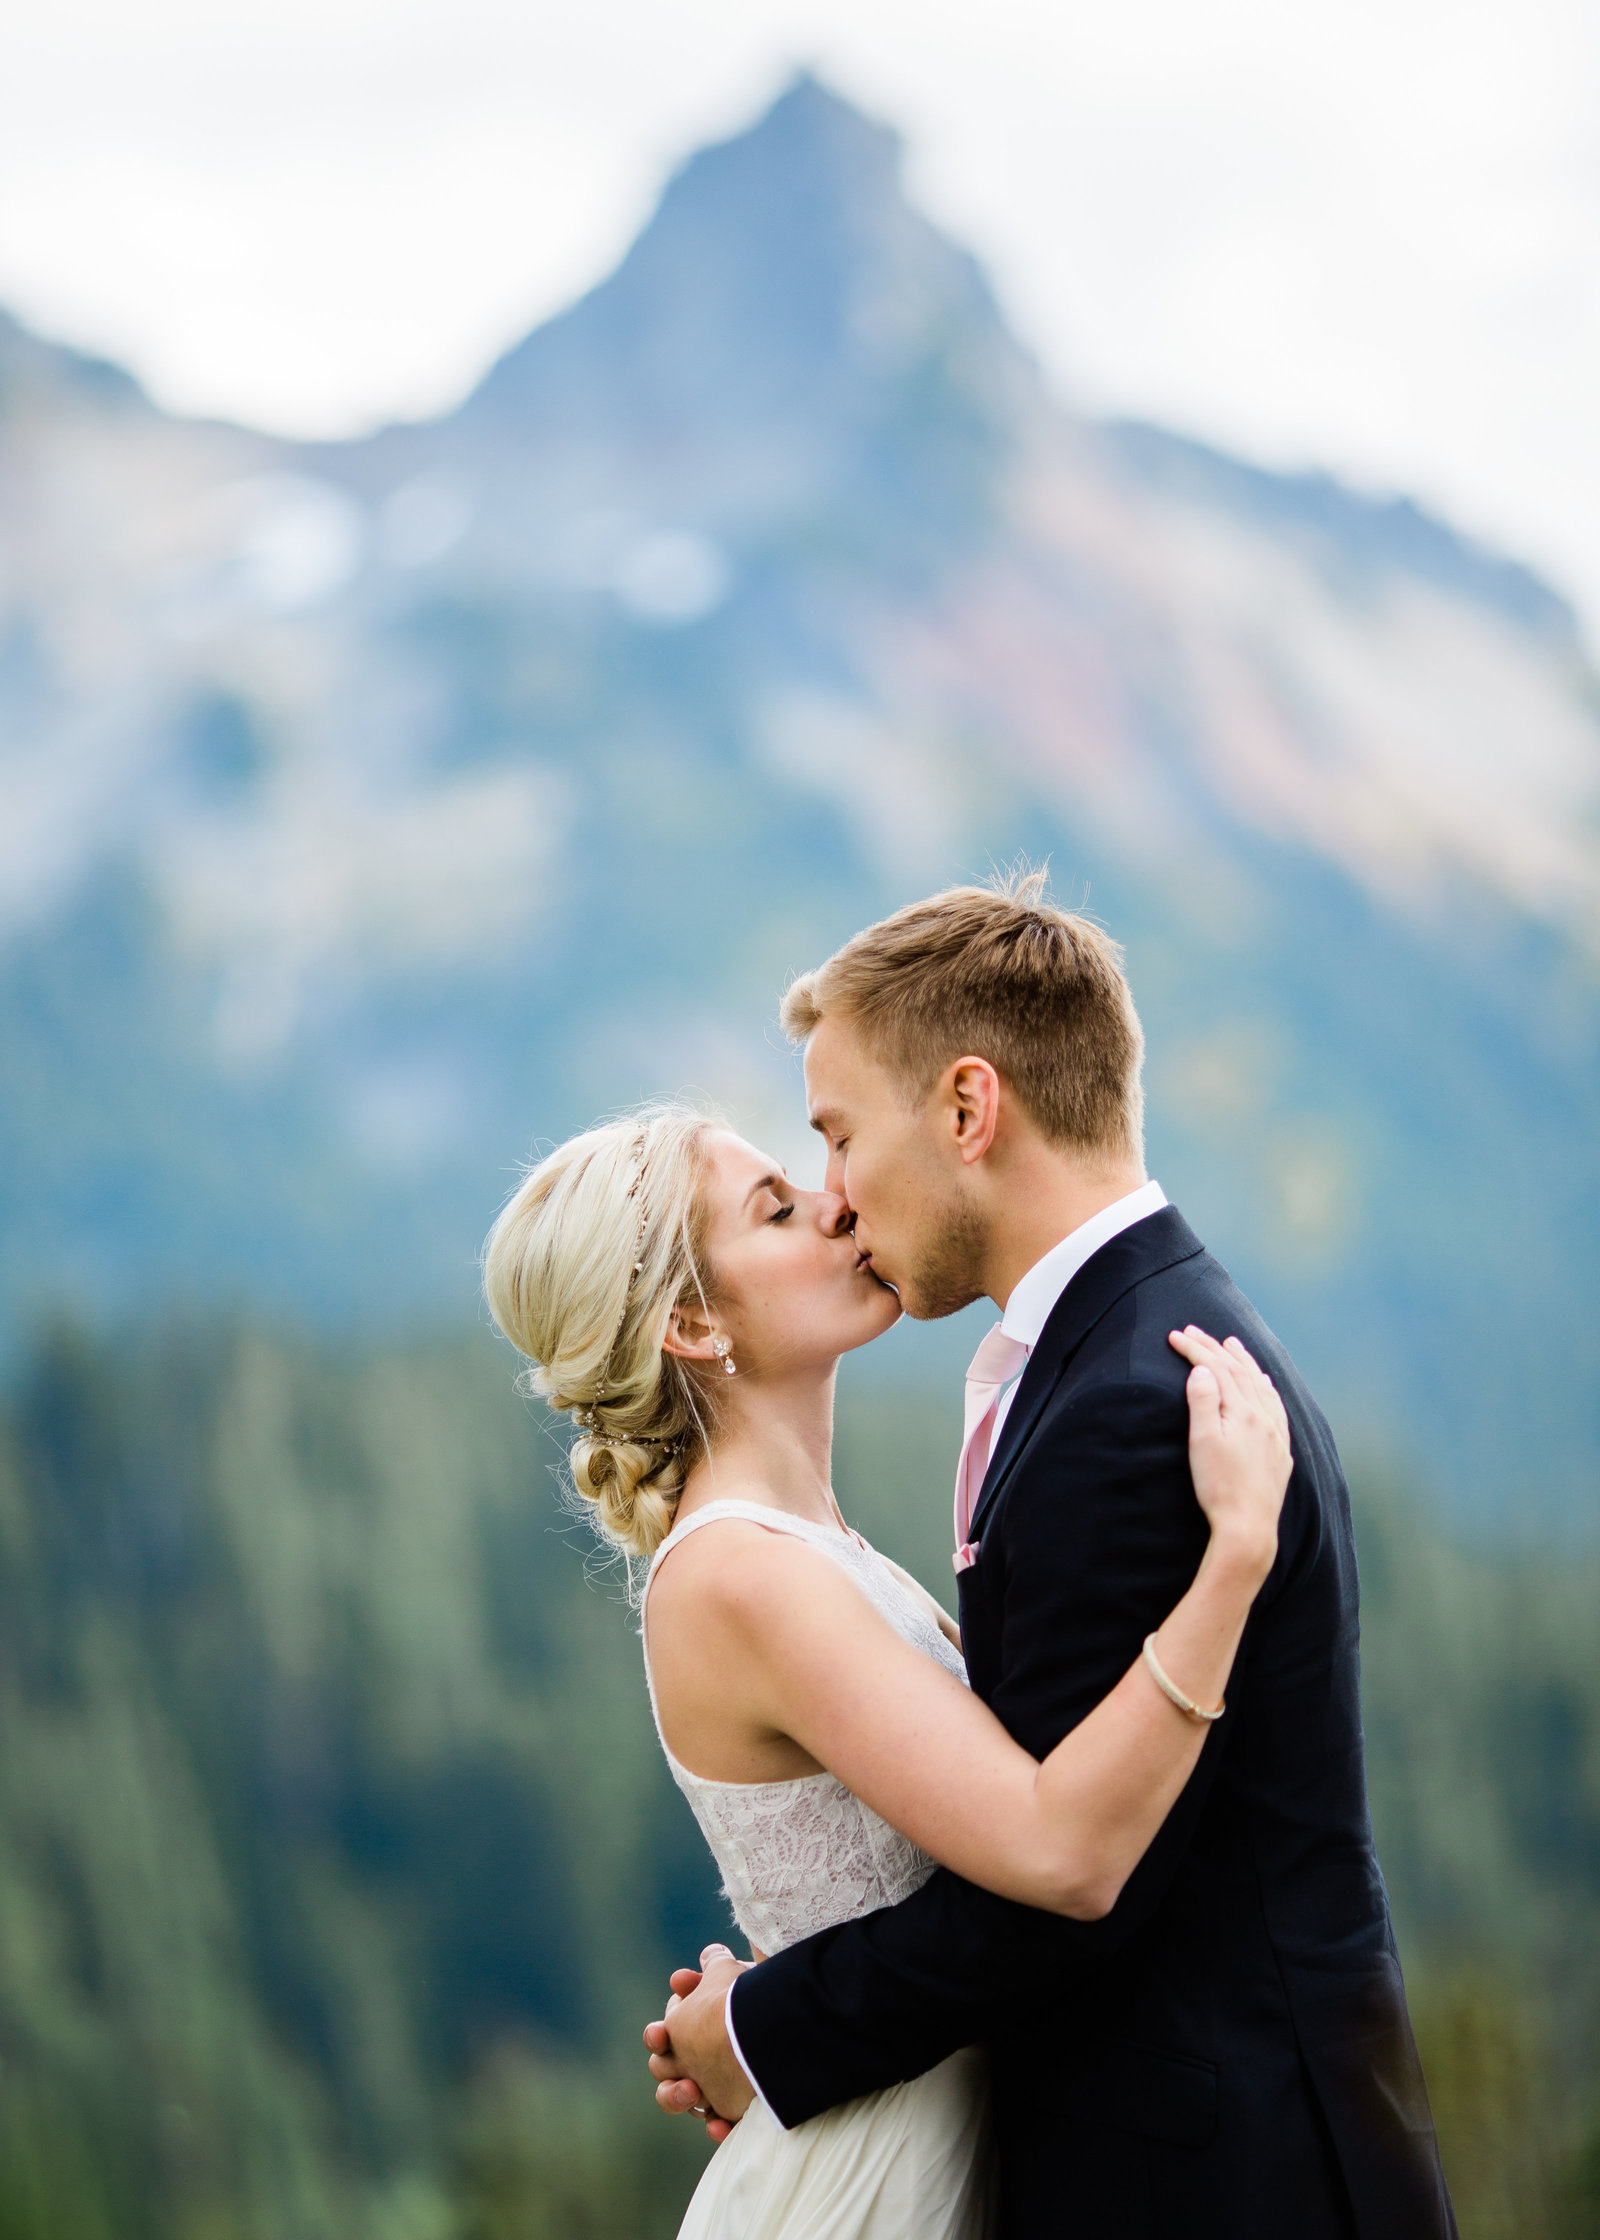 mount-rainier-national-park-elopement-cameron-zegers-photographer-seattle-306